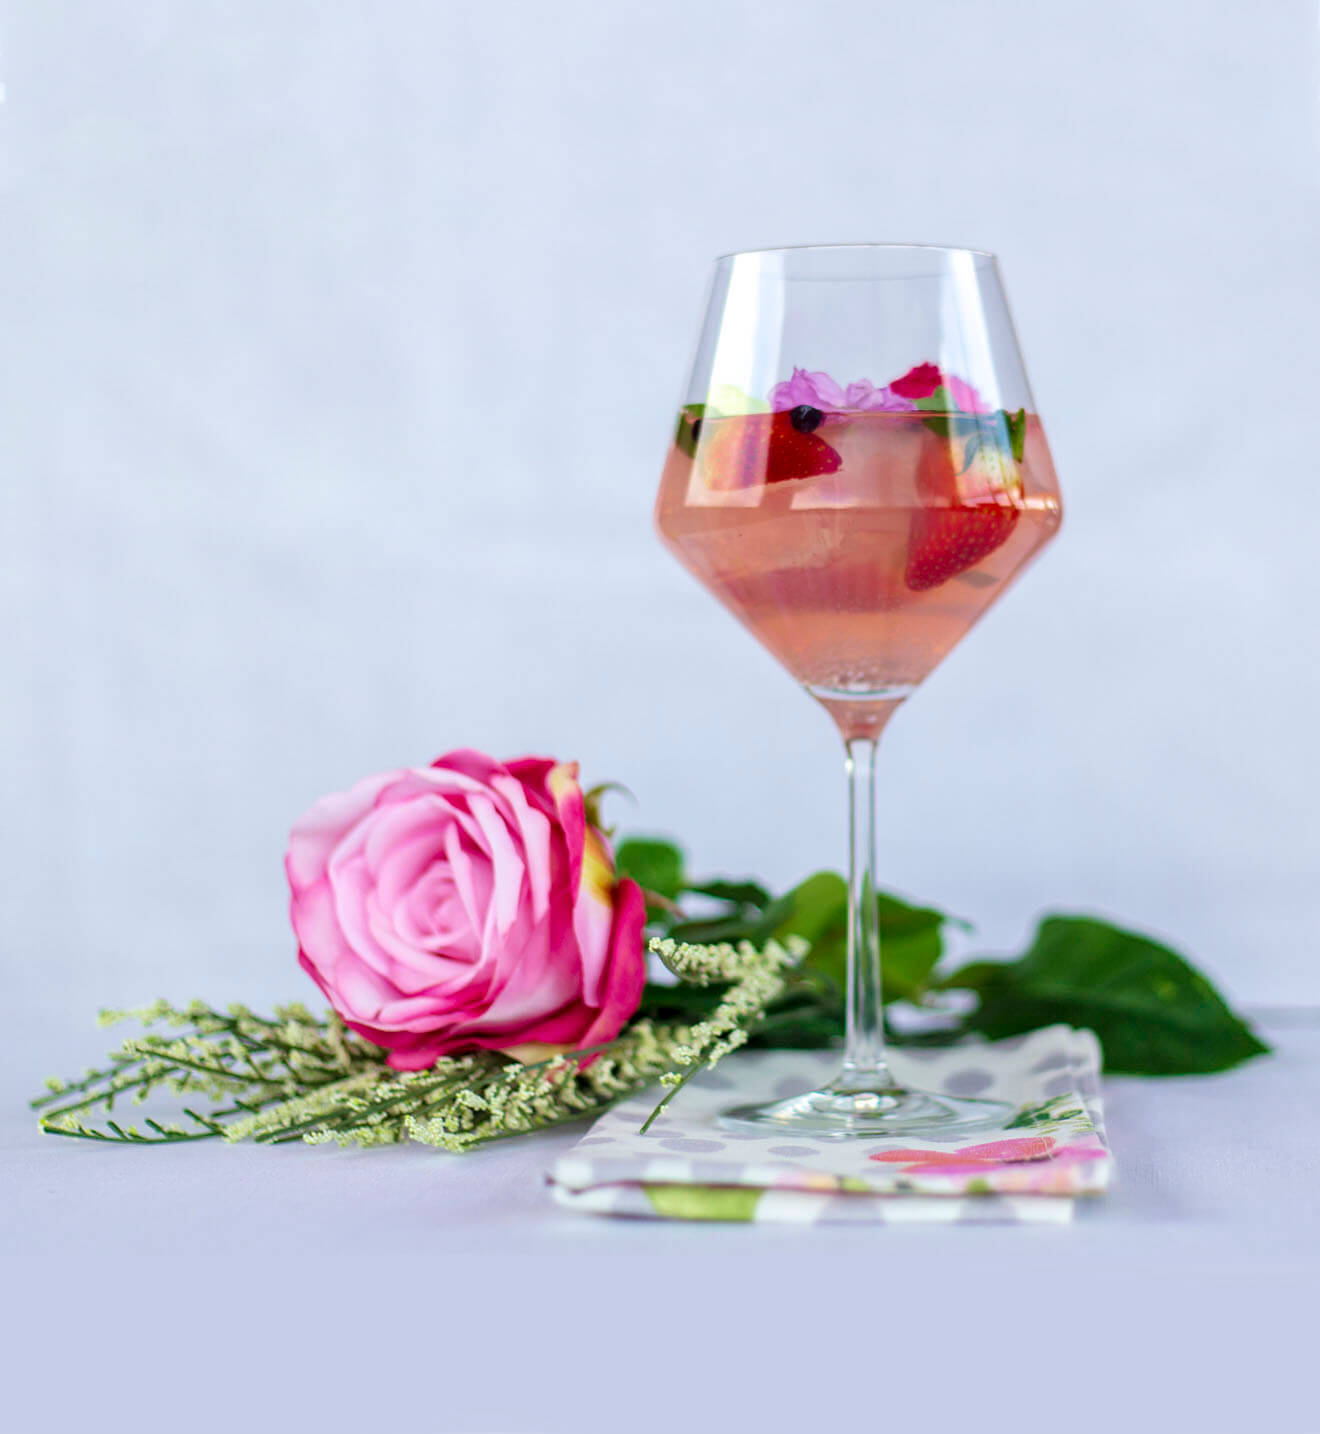 Copper & Kings' Spanish Rosa Gintonic